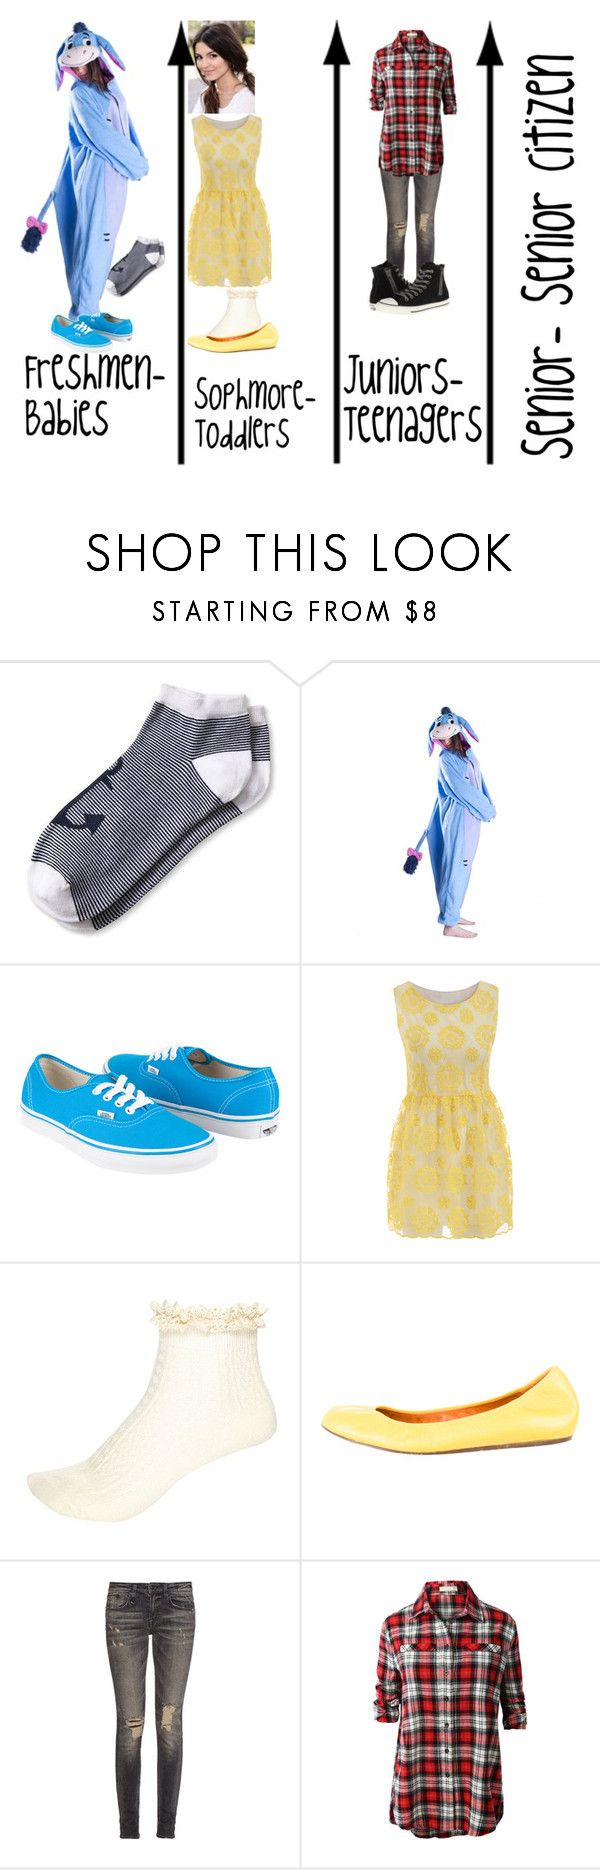 Unique ideas for spirit week -  Generation Day St Pete High School Spirit Week By Lizzybunny18